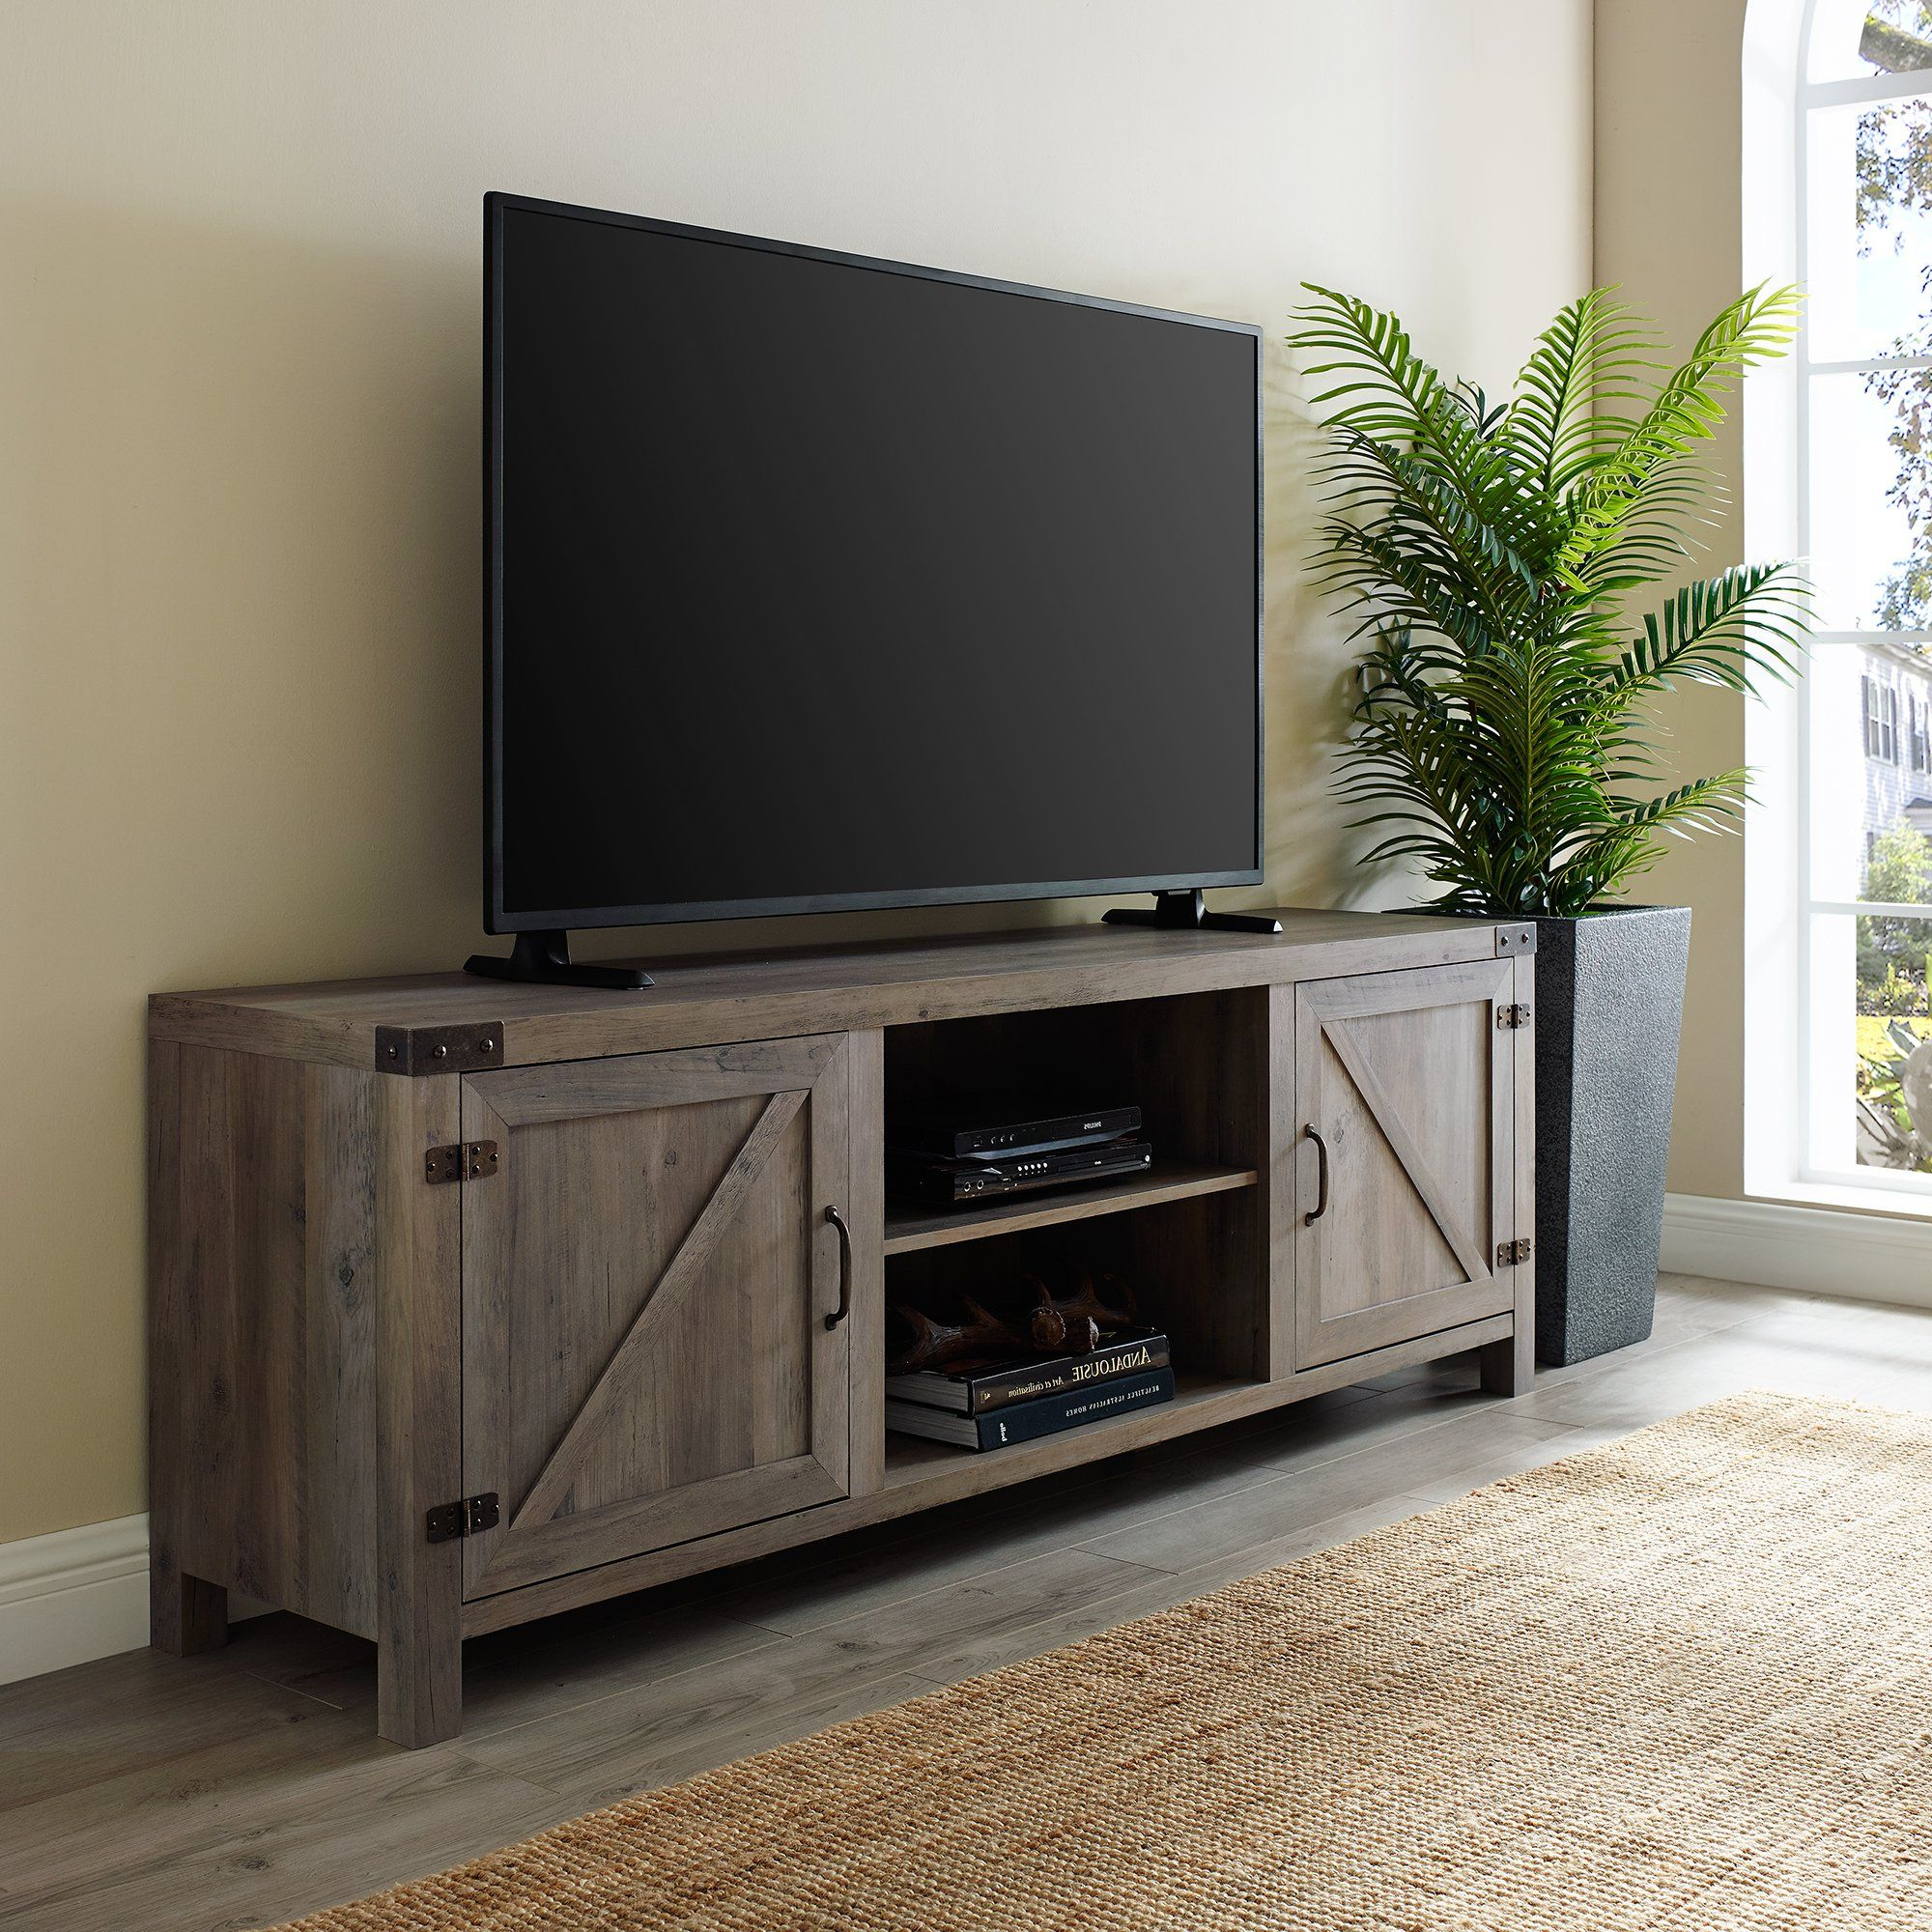 """70 Inch Modern Farmhouse Tv Stand – Gray Wash In 2020 Intended For Rustic Corner 50"""" Solid Wood Tv Stands Gray (View 3 of 20)"""